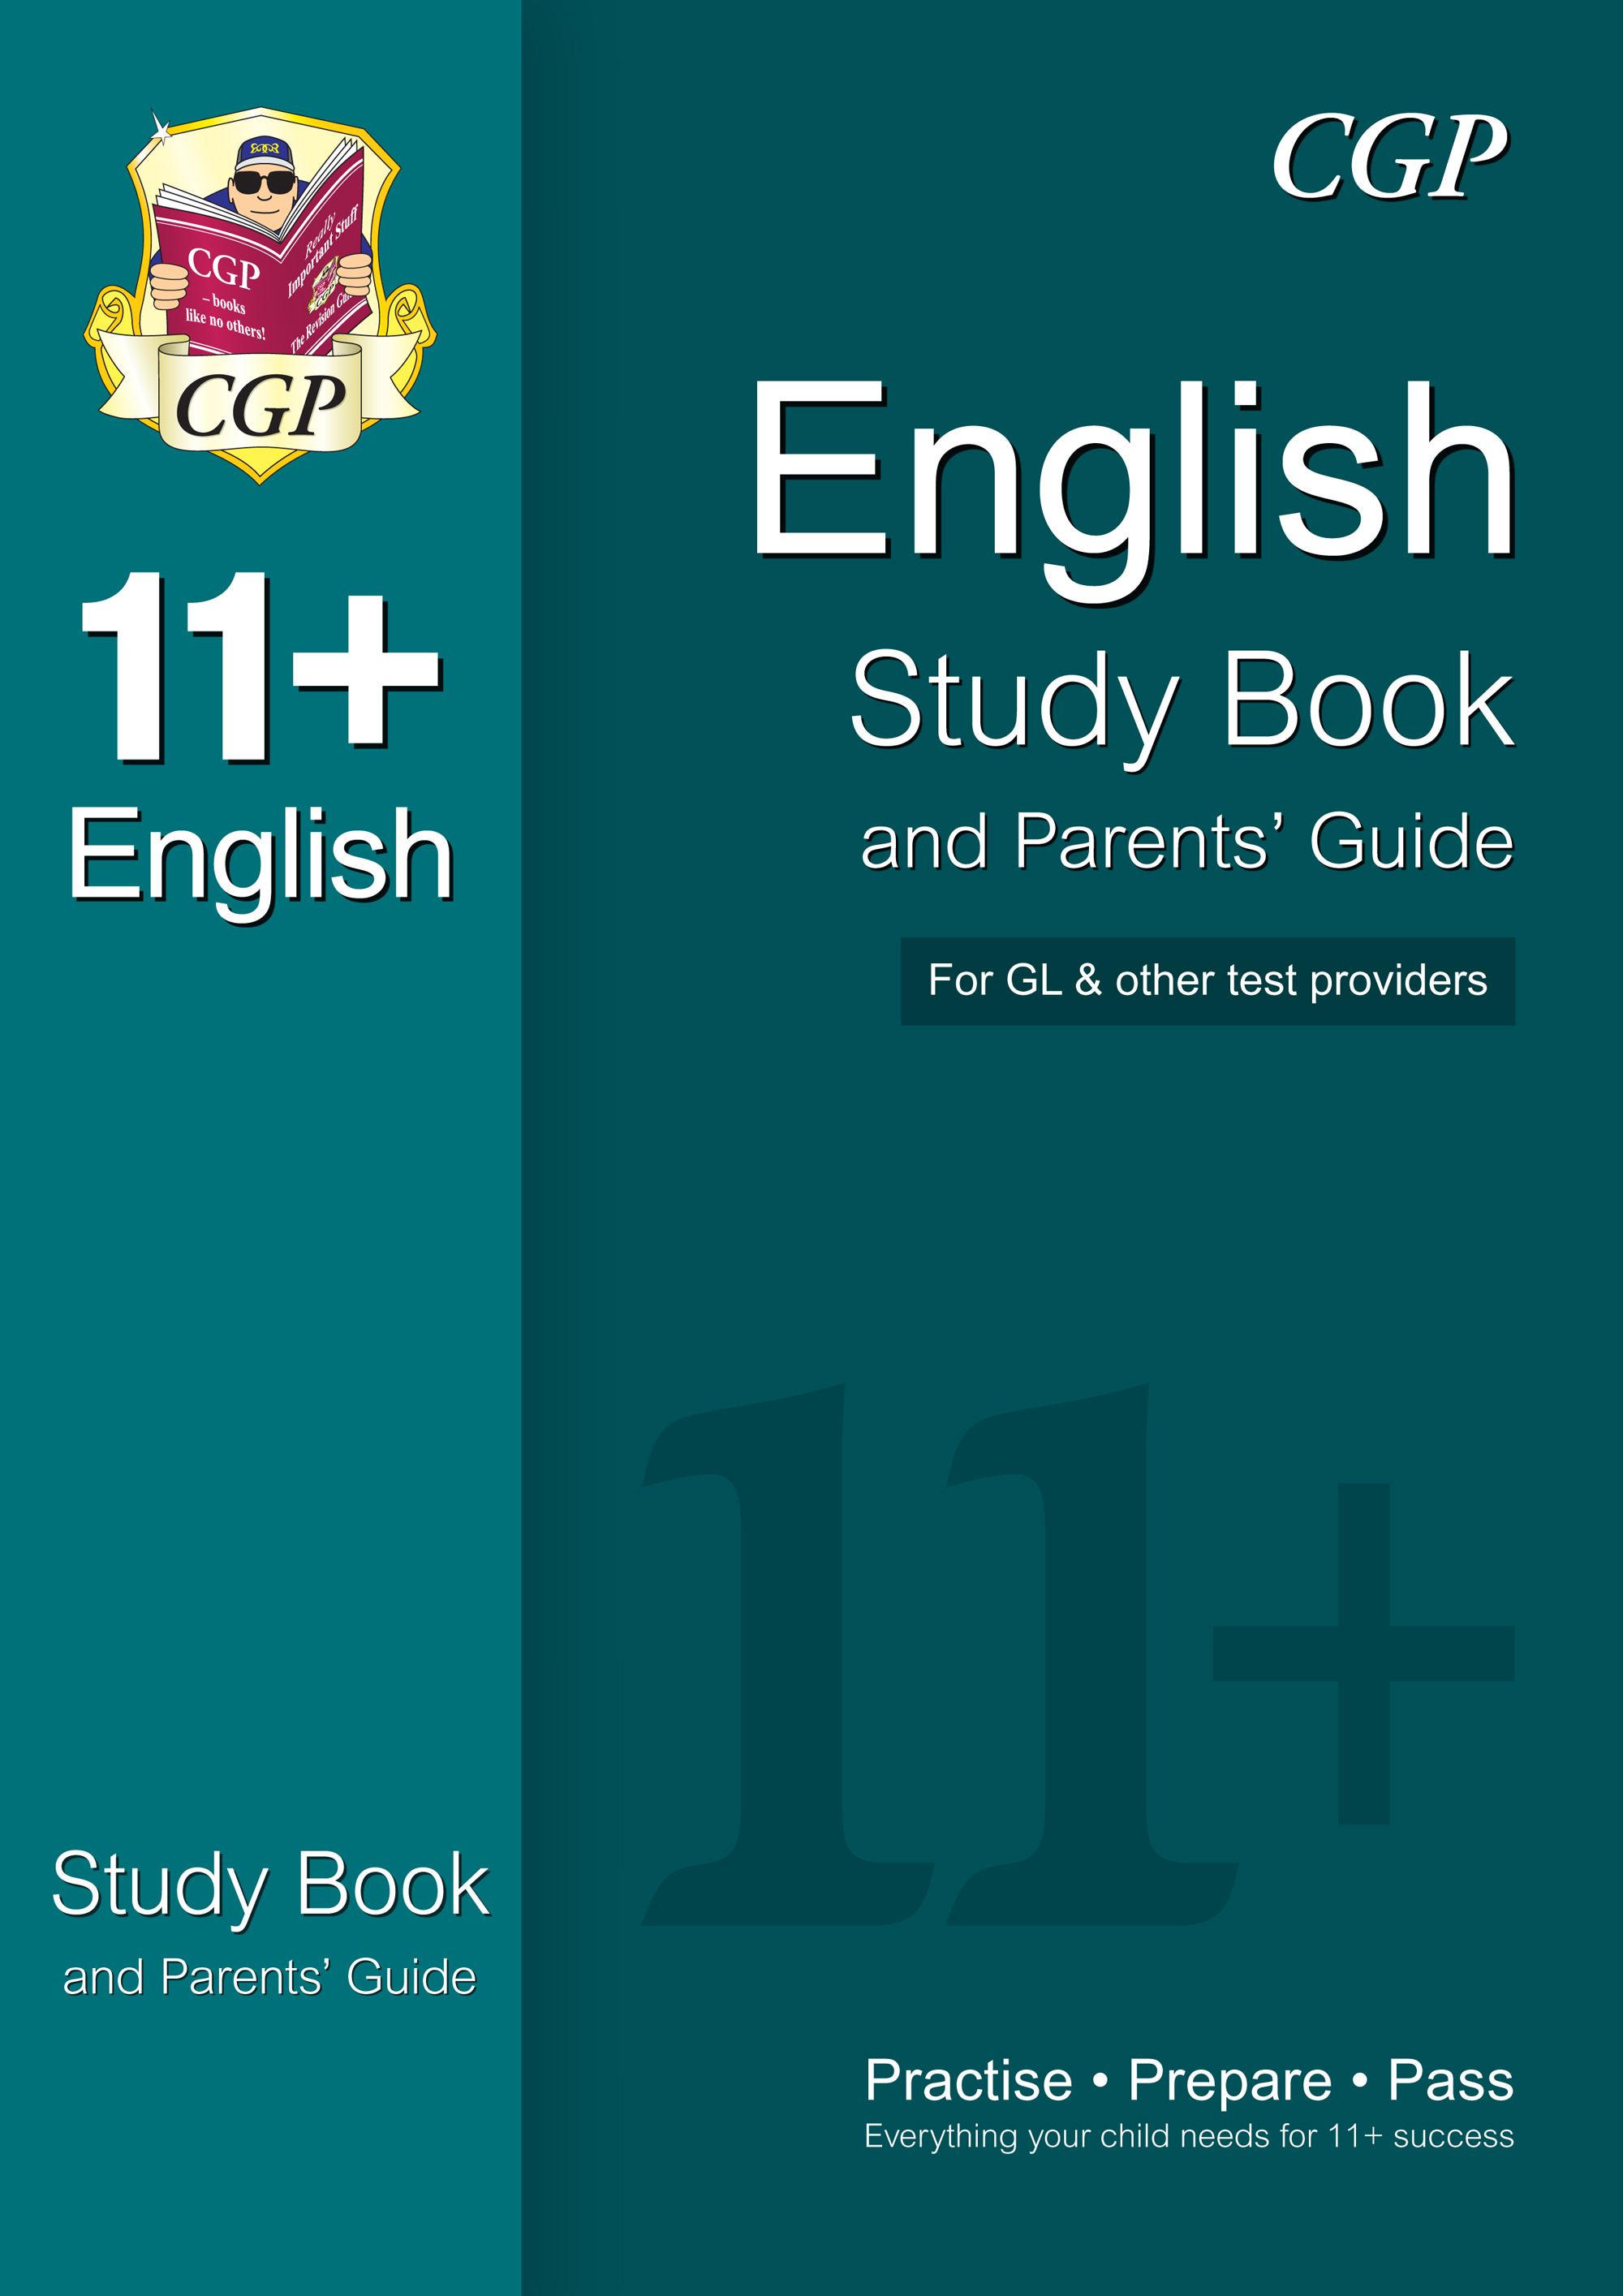 EHRE1 - 11+ English Study Book and Parents' Guide (for GL & Other Test Providers)